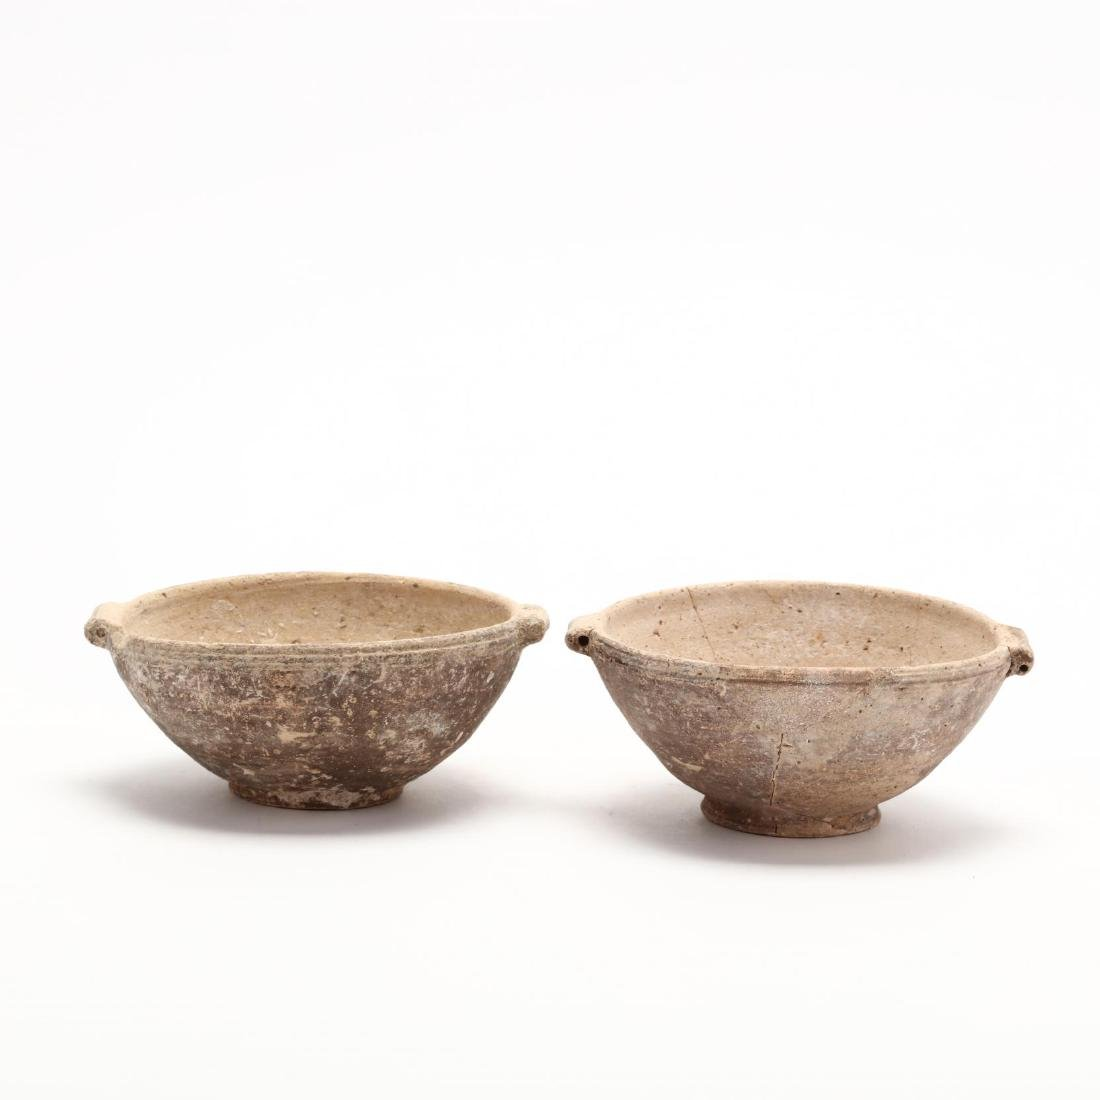 Two Cypriot Hellenistic White Ware Bowls, Ex. Morris - 4